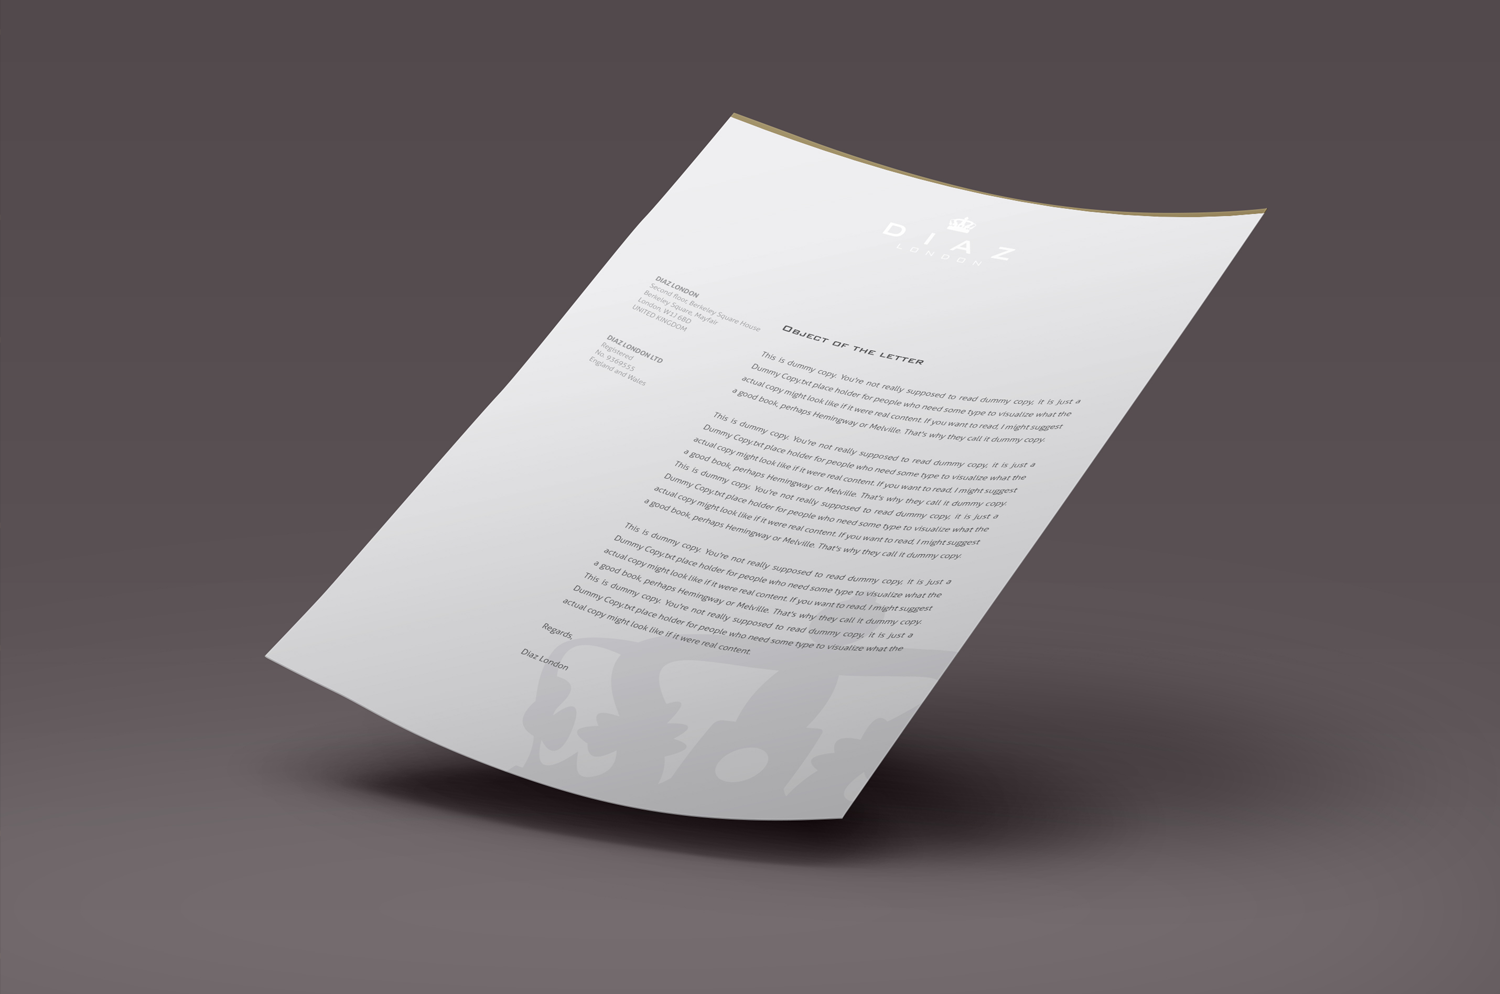 sublime-digital_branding_diaz-london-letterhead